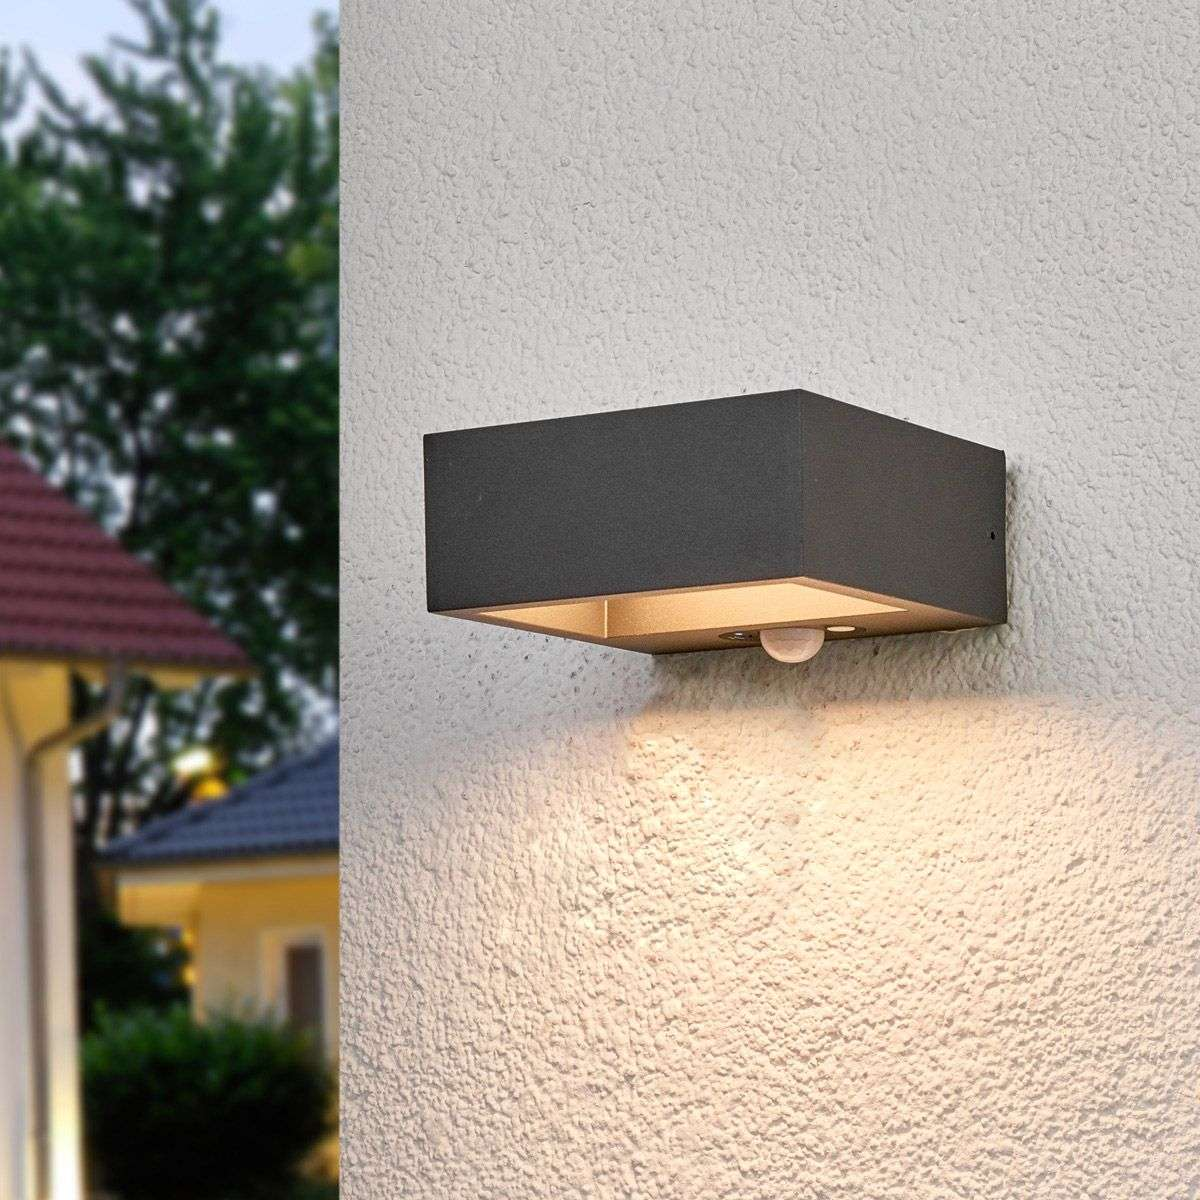 Solar-powered LED outdoor wall light Mahra 5343e9c79224